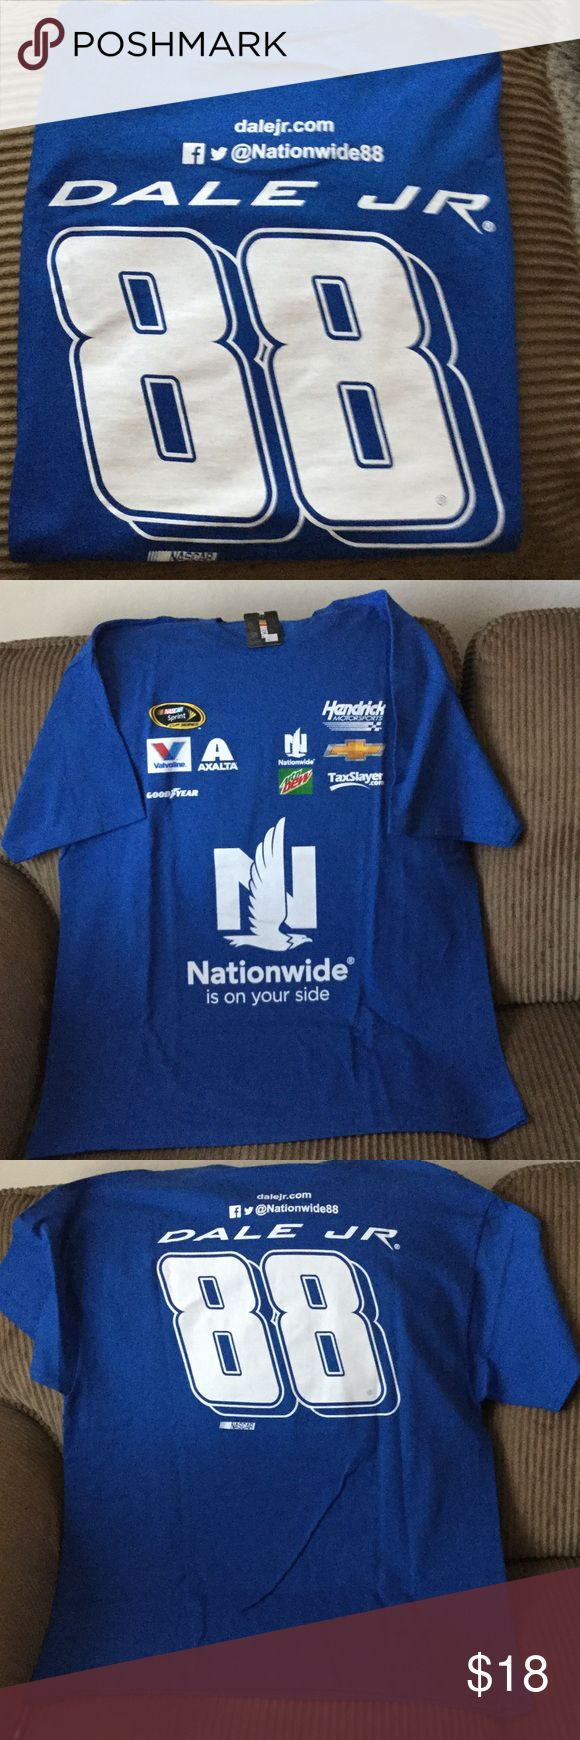 NASCAR Dale Earnhardt short sleeve T shirt NASCAR shirt with Nationwide on front and Dale, Jr. 88 on back,  from smoke free home, new with tags Hendrix Motorsports Shirts Tees - Short Sleeve